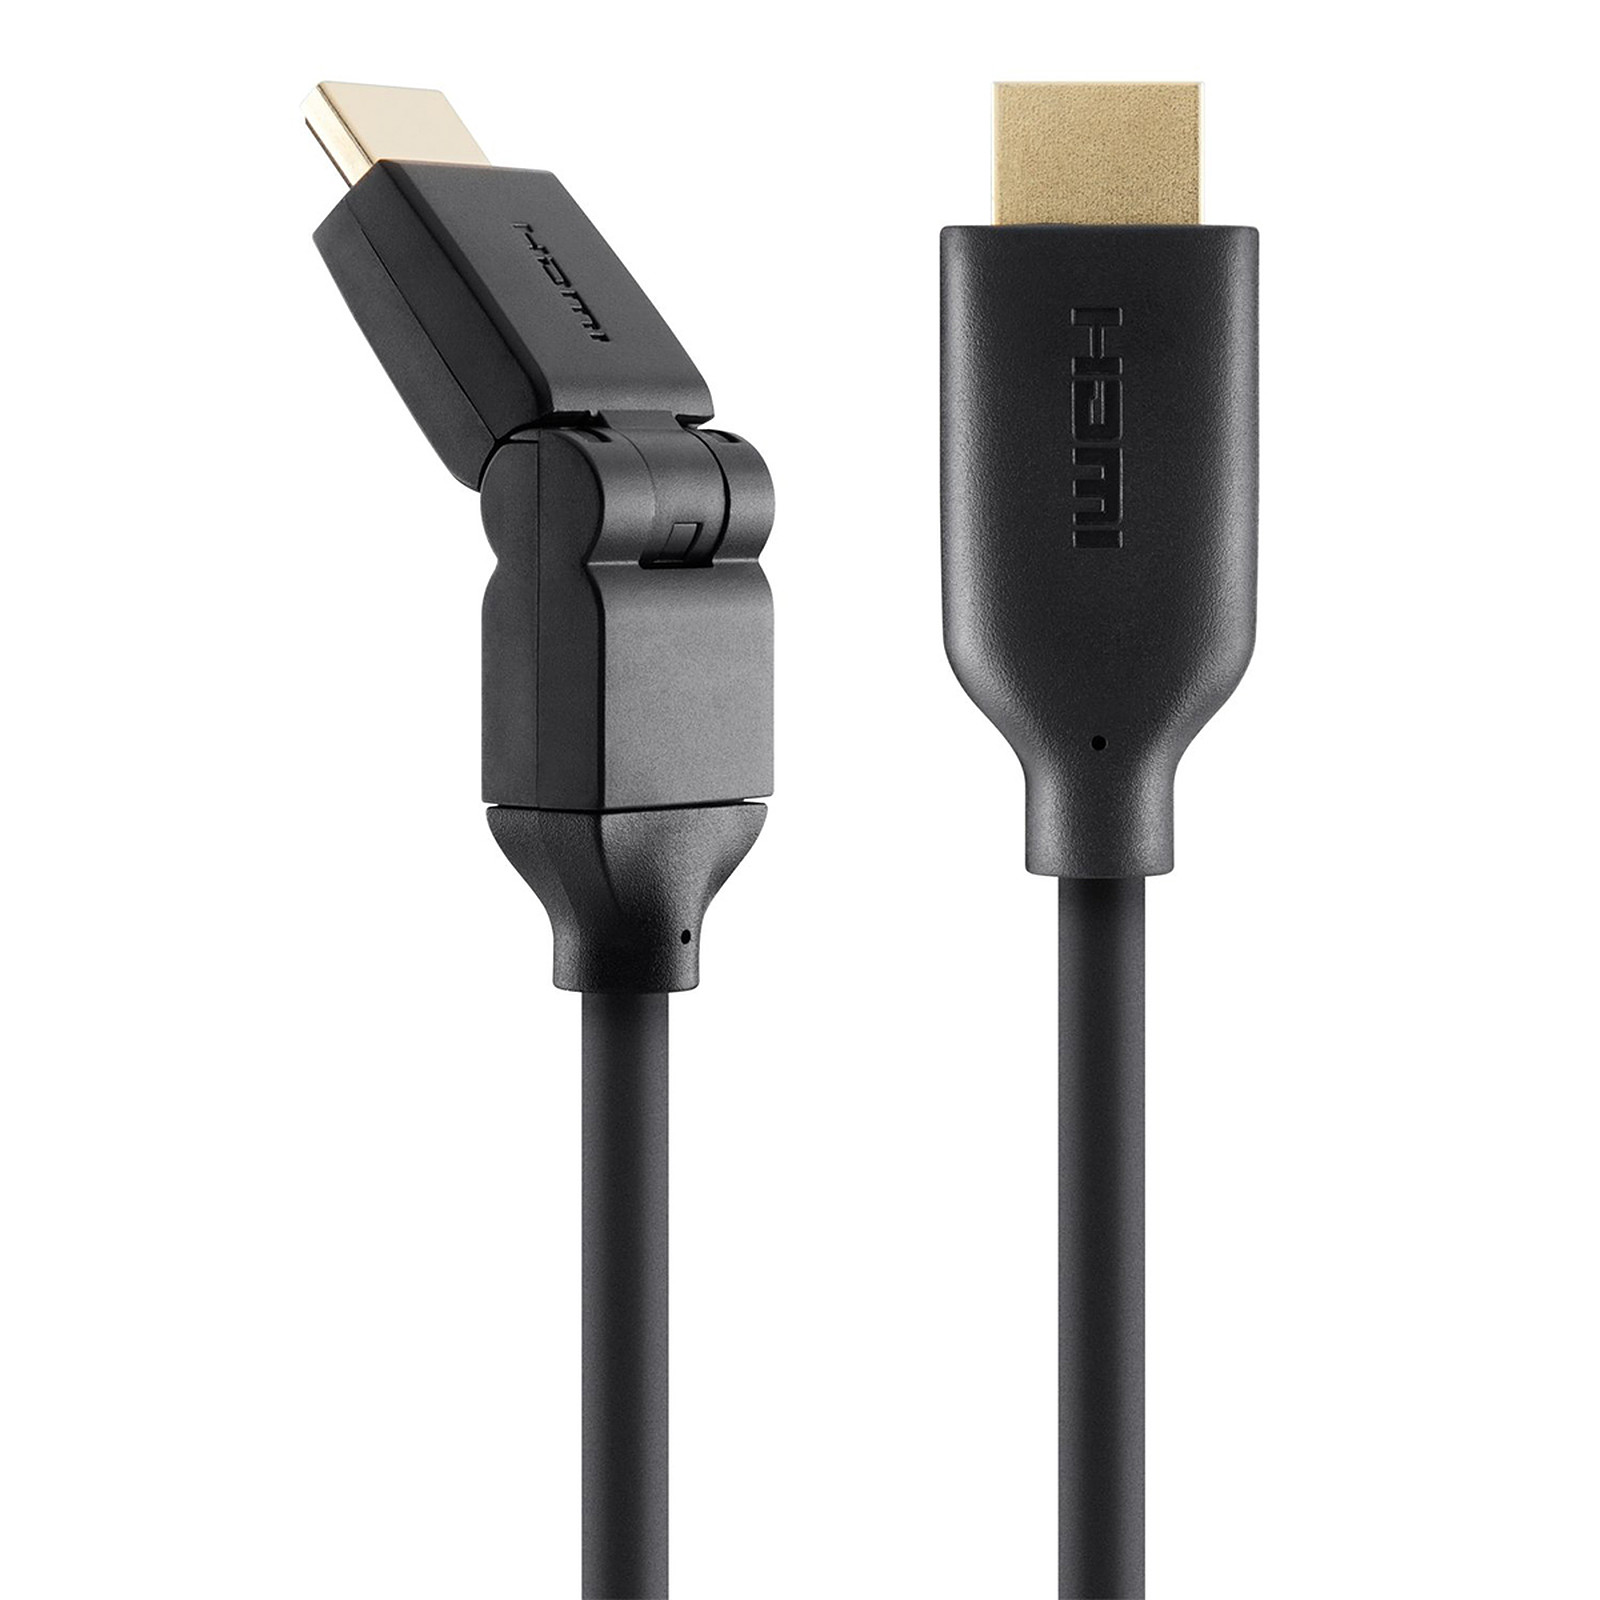 Belkin Câble HDMI High Speed Pivotant avec Ethernet - 2 mètres (F3Y023BT2M)